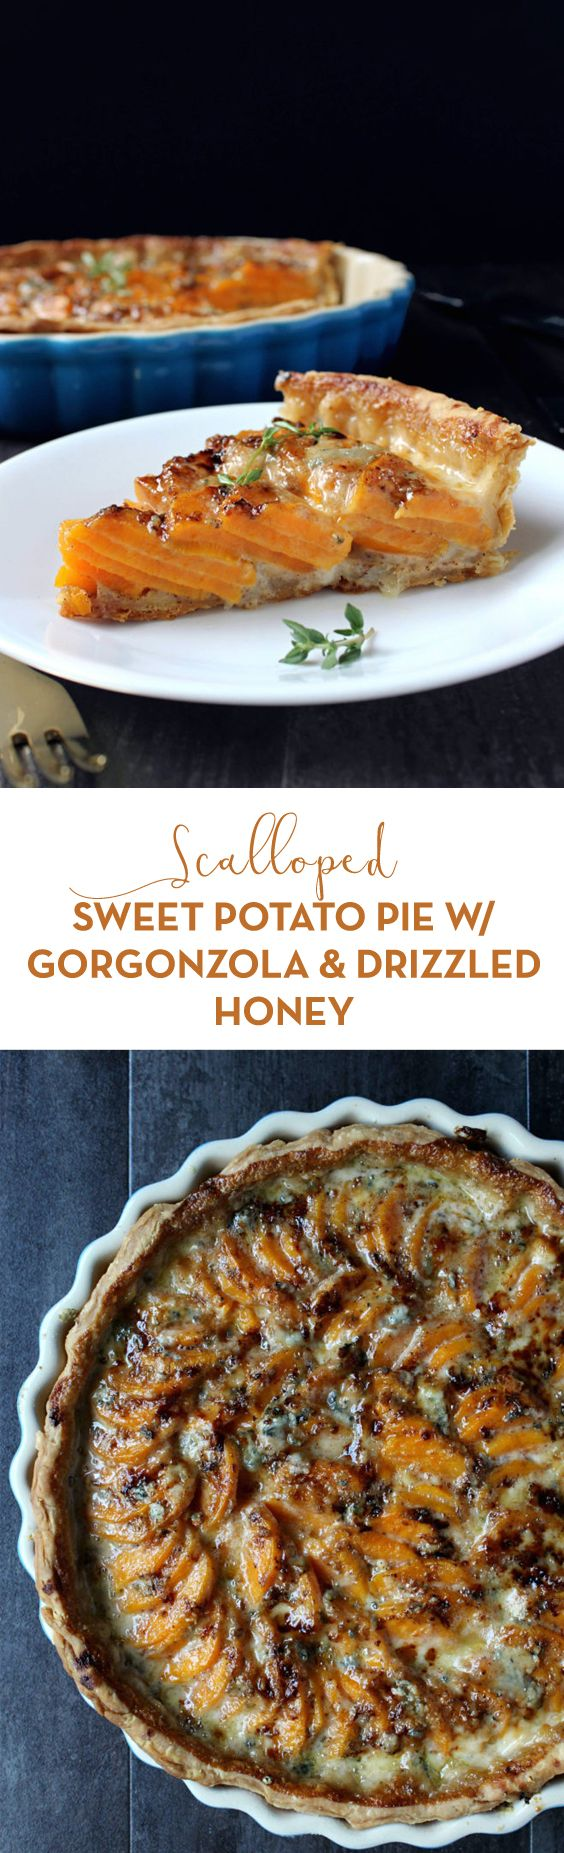 The side dish everyone will rave about! Scalloped Sweet Potato Pie w/ Gorgonzola + Honey is a deliciously sweet & savory way to celebrate the holidays.